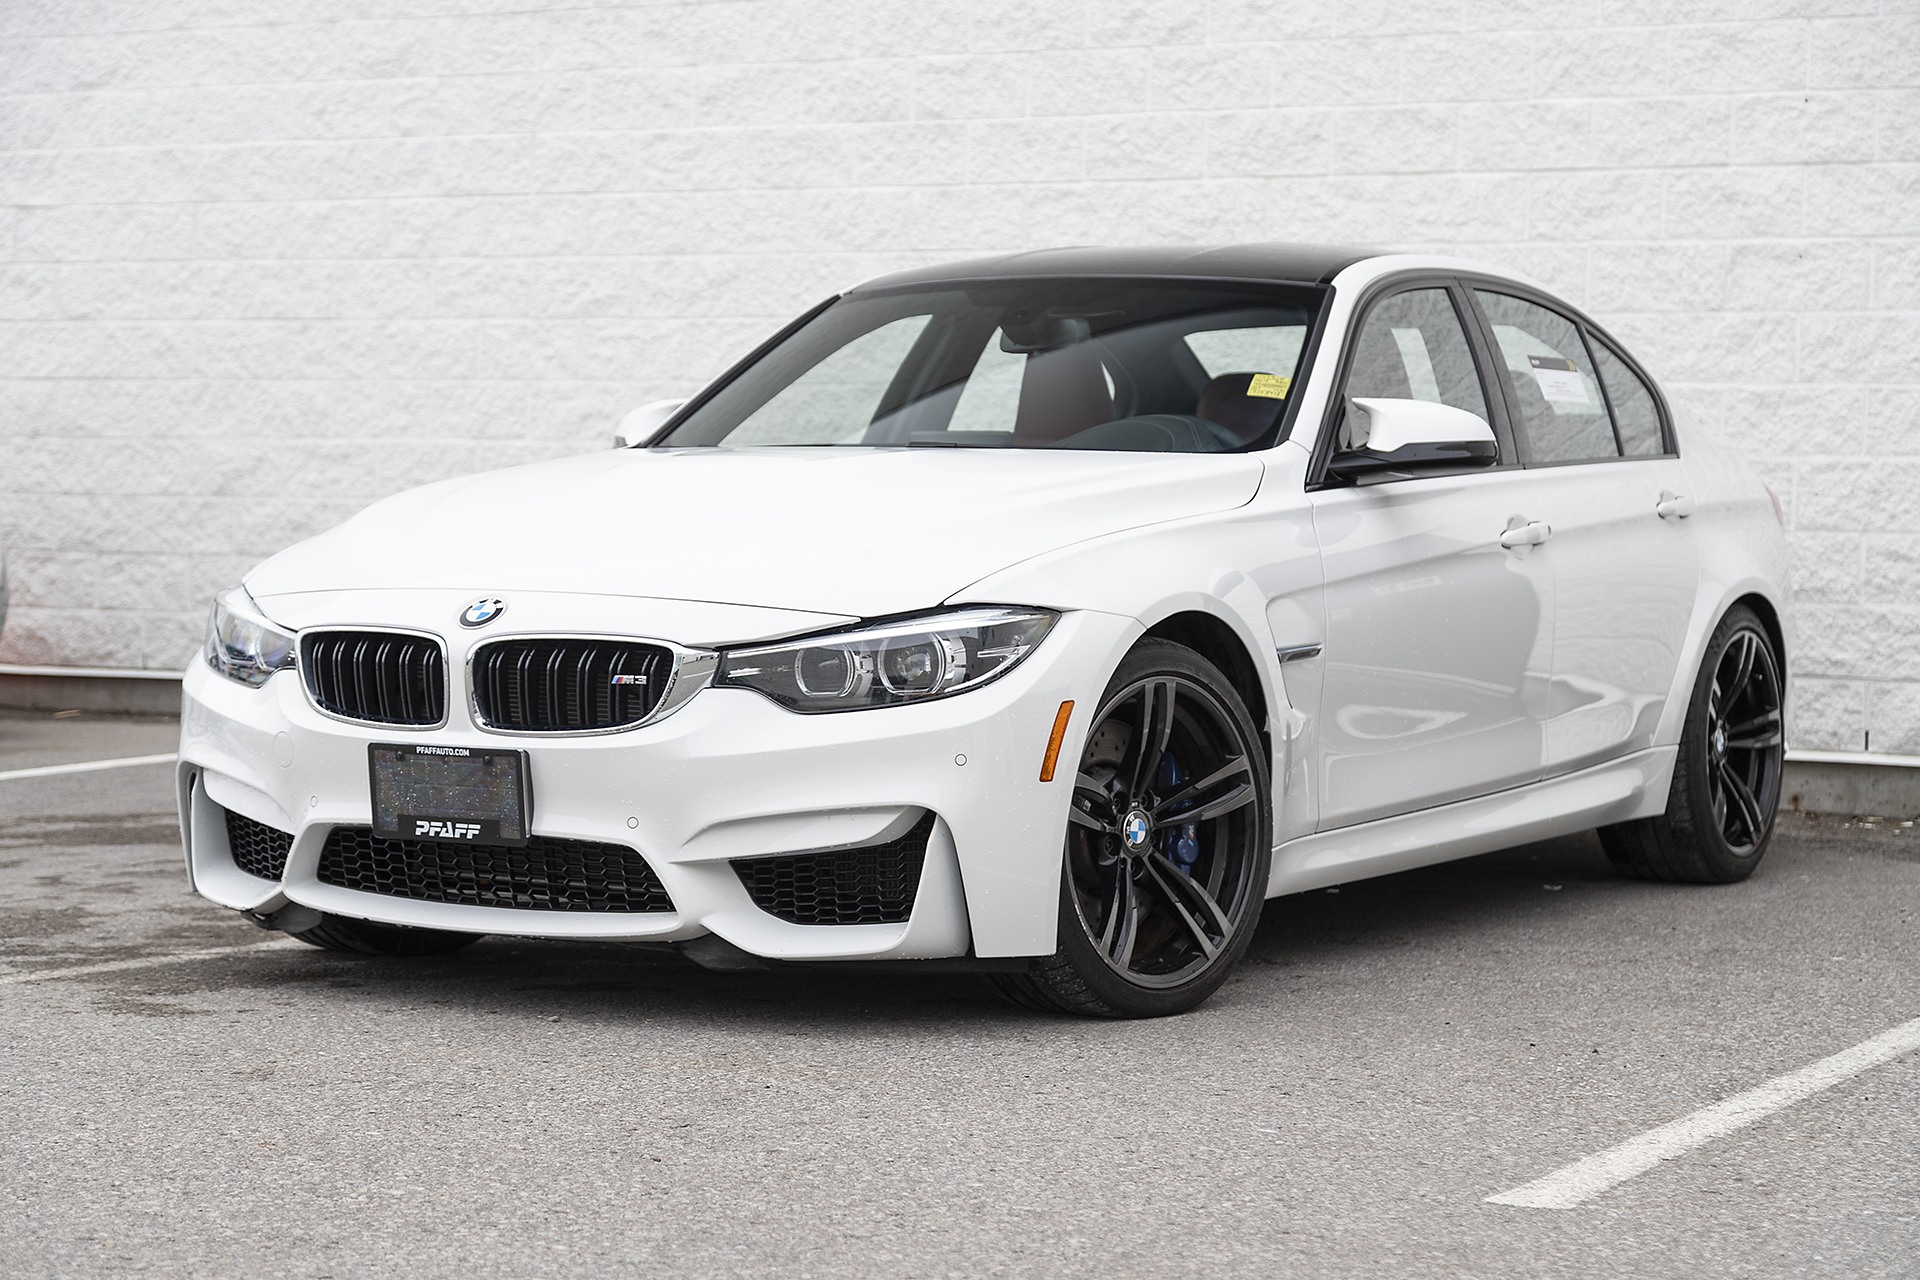 2018 BMW M3. Lease for $832.25 + HST / month